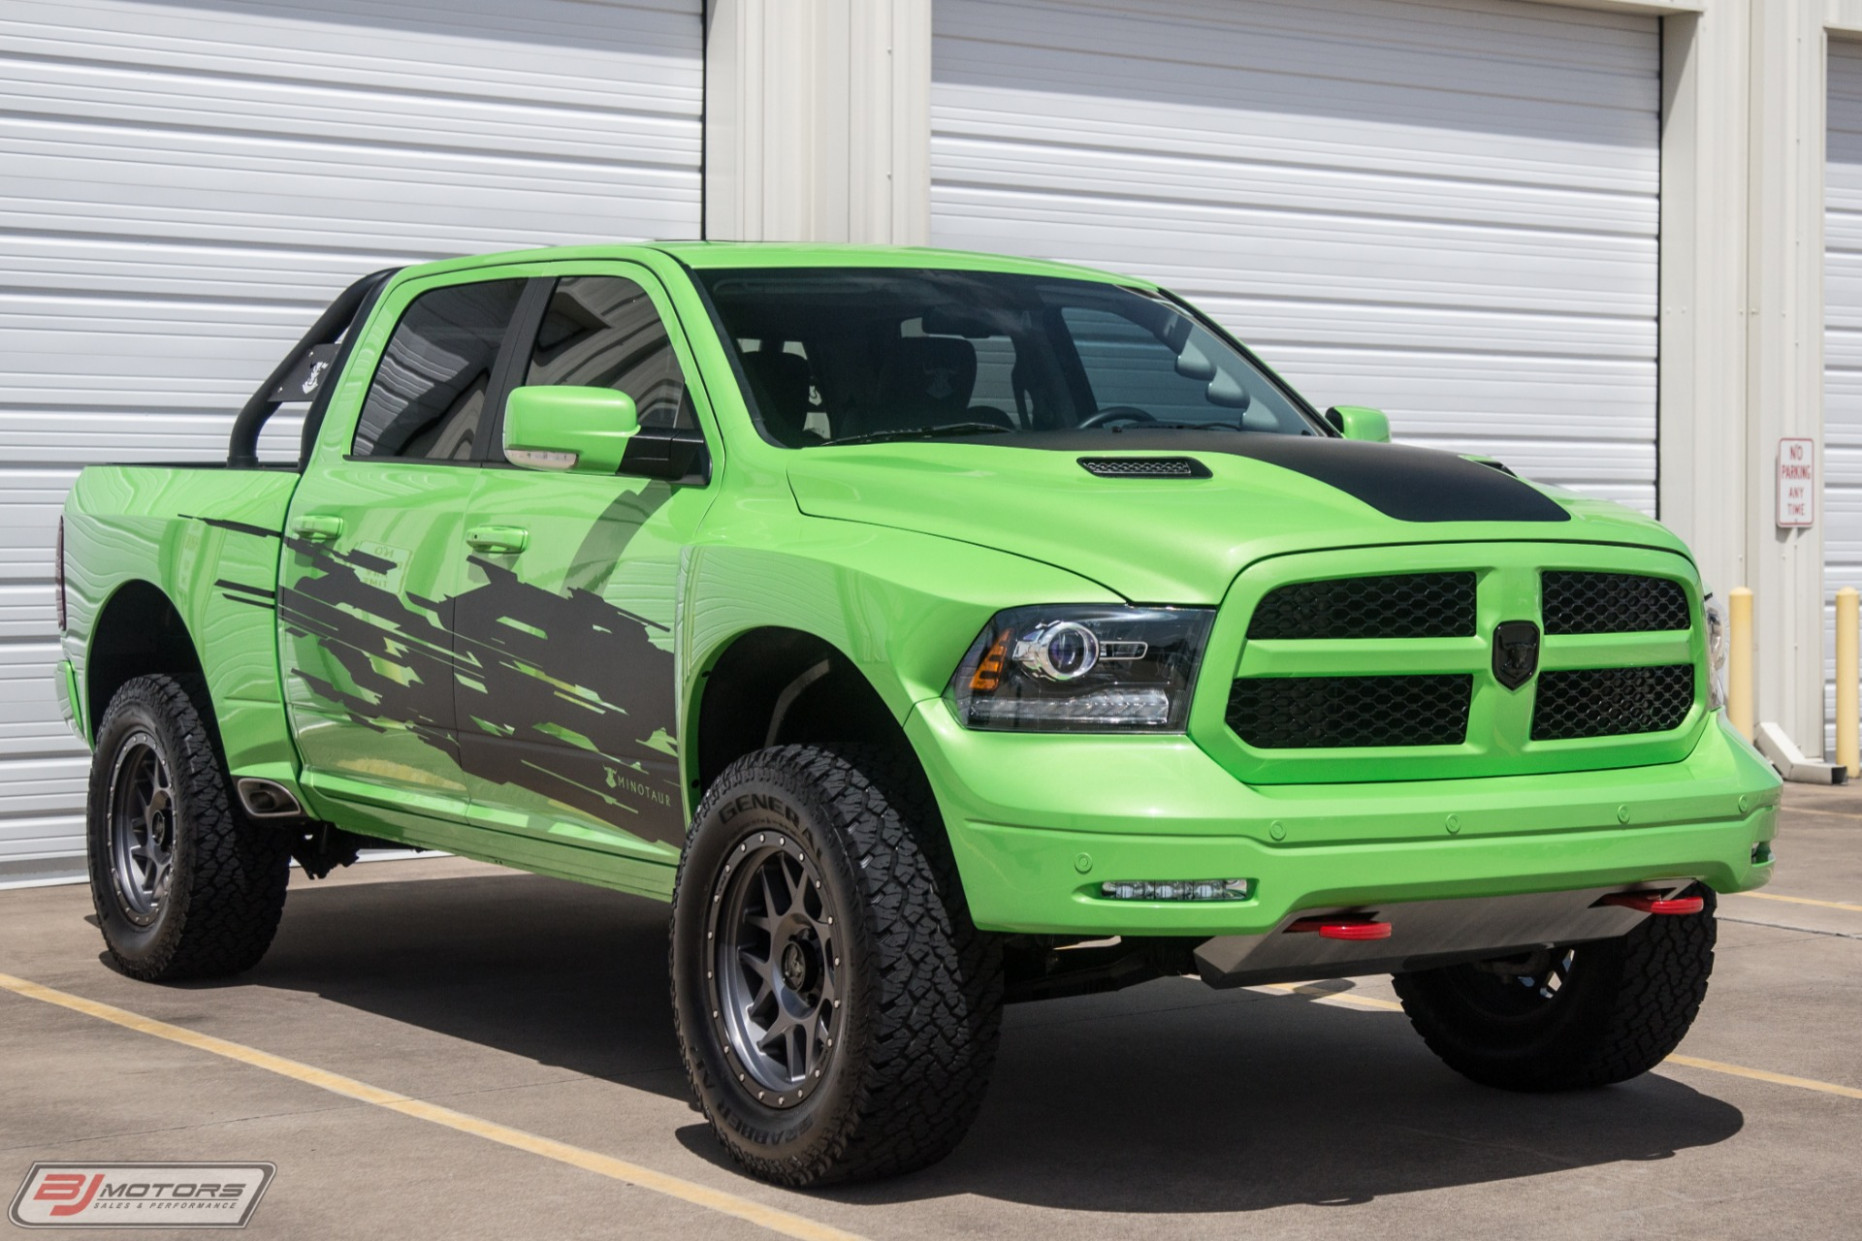 Used 8 Dodge Ram 8 Minotaur For Sale ($8,8) | BJ Motors ...